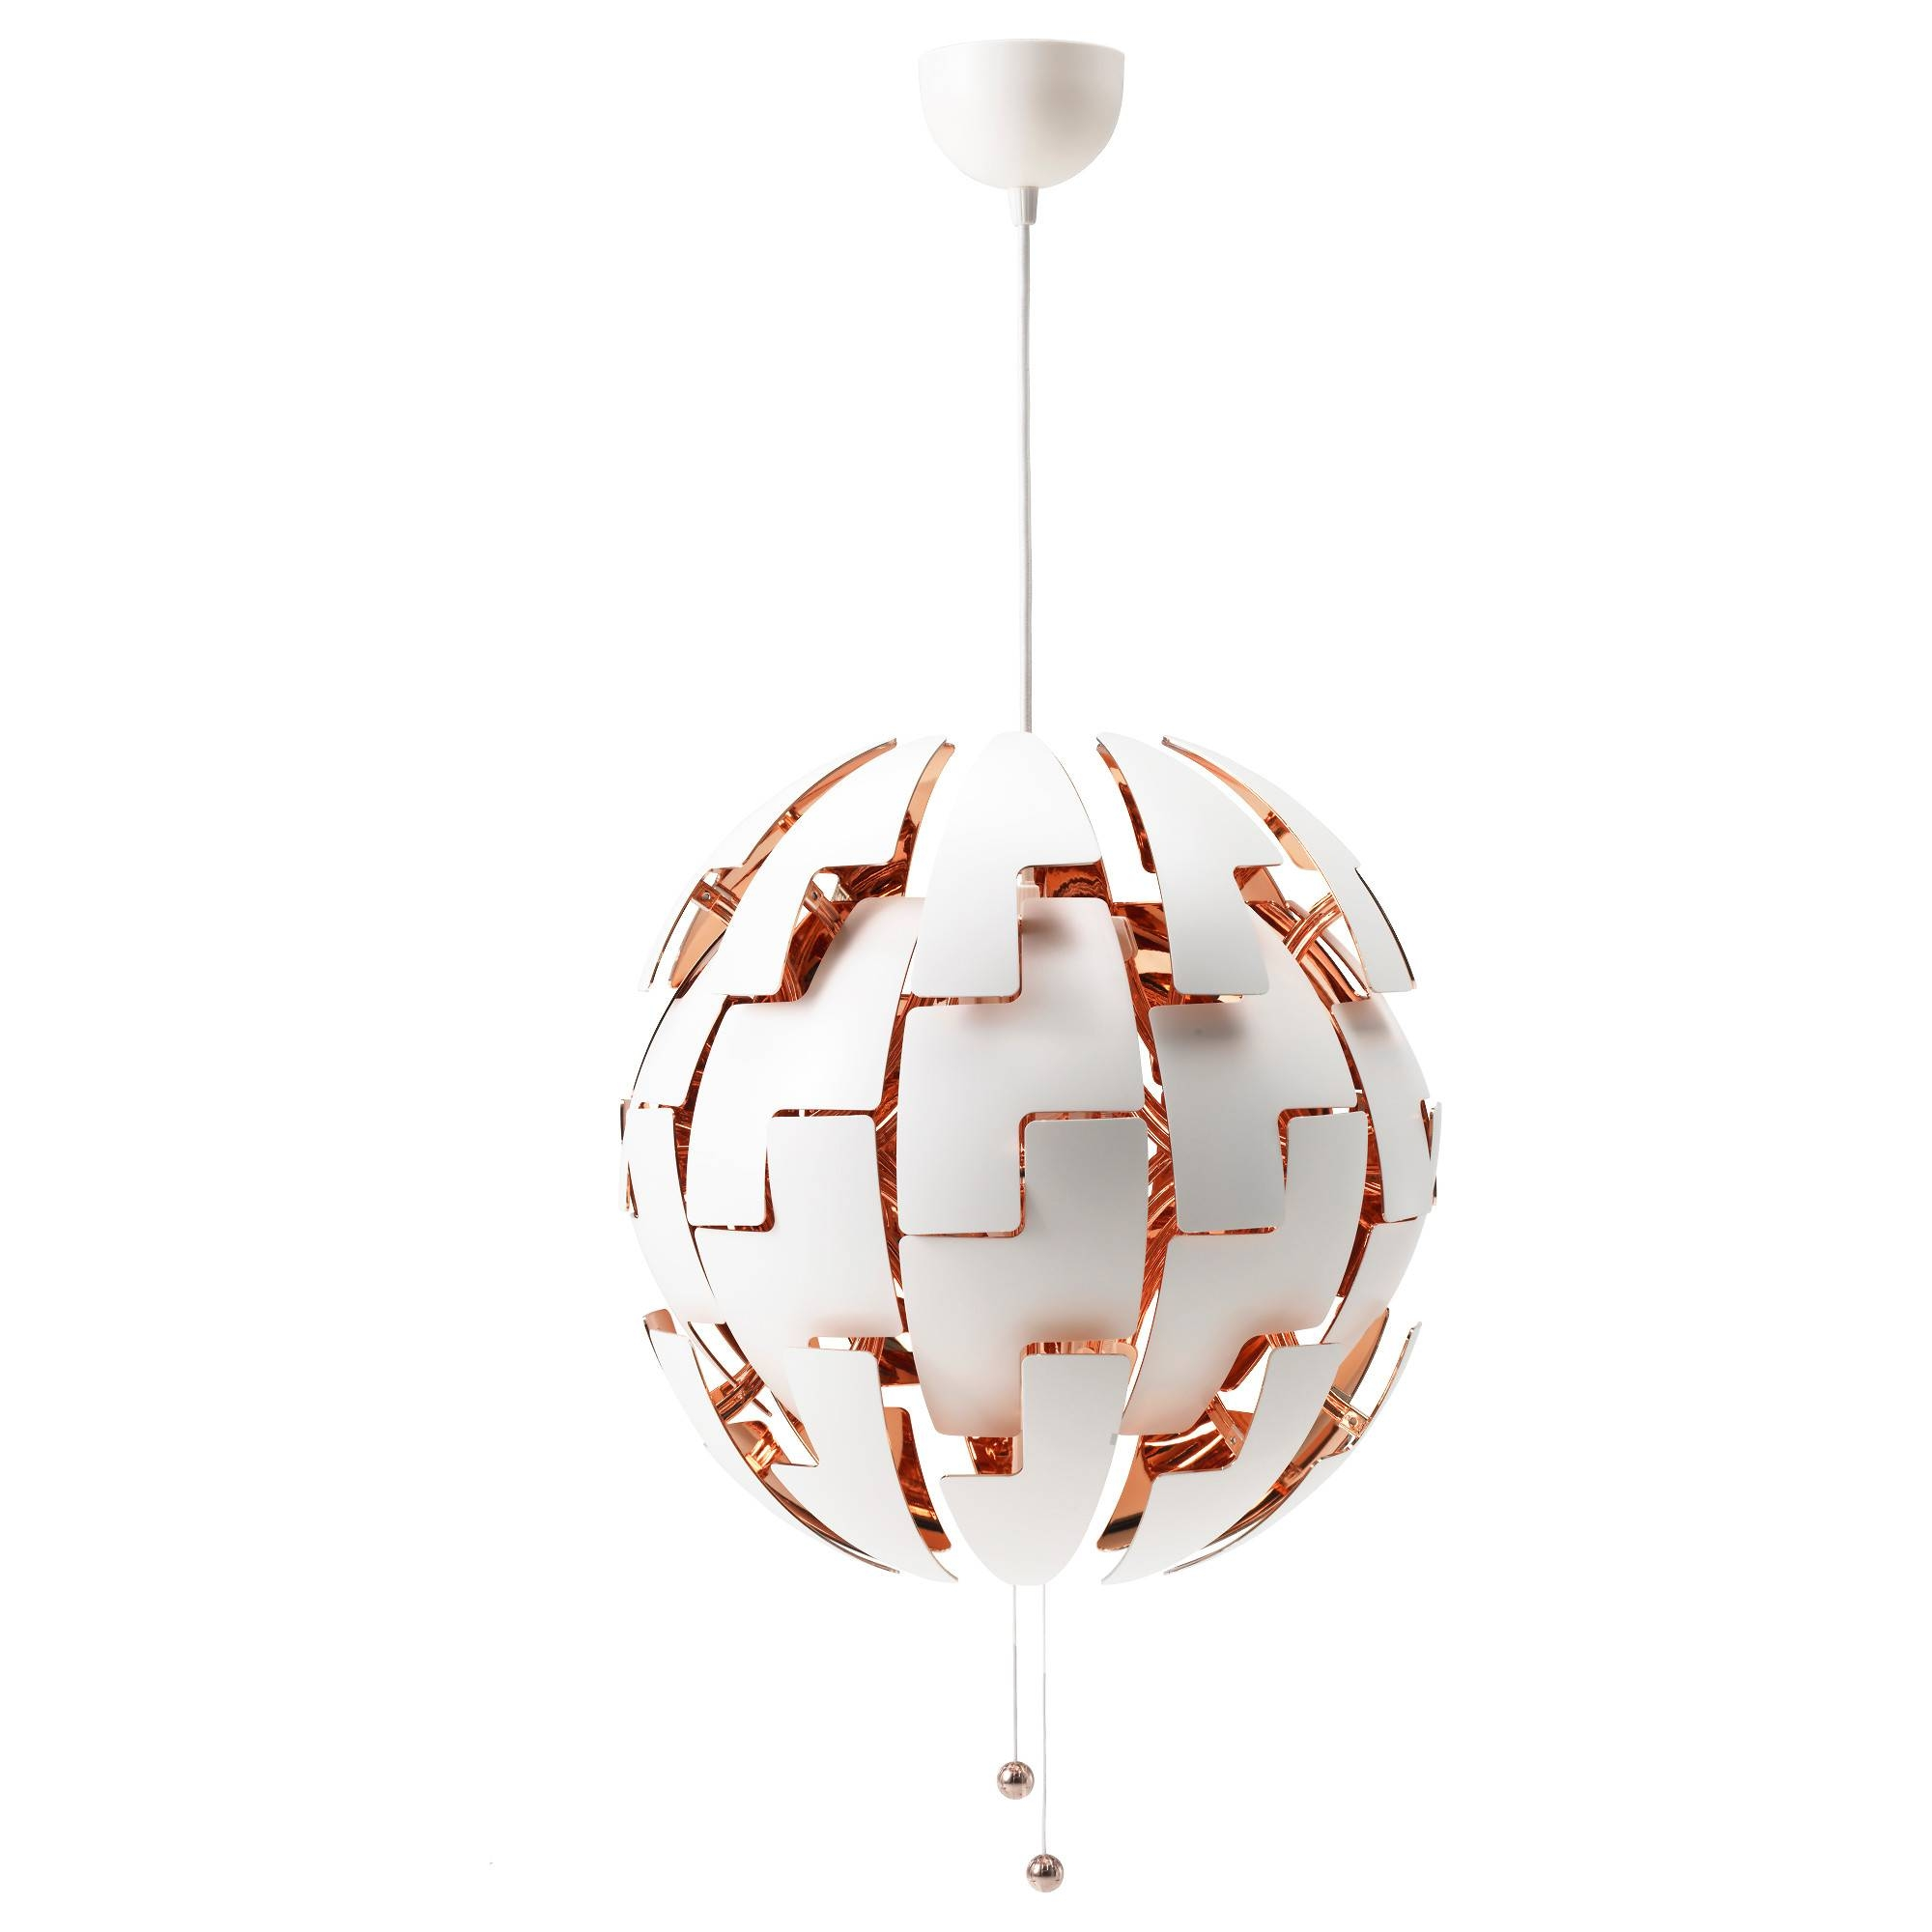 Ikea Ps 2014 Pendant Lamp White/copper-Colour 52 Cm - Ikea regarding Ikea Globe Pendant Lights (Image 10 of 15)